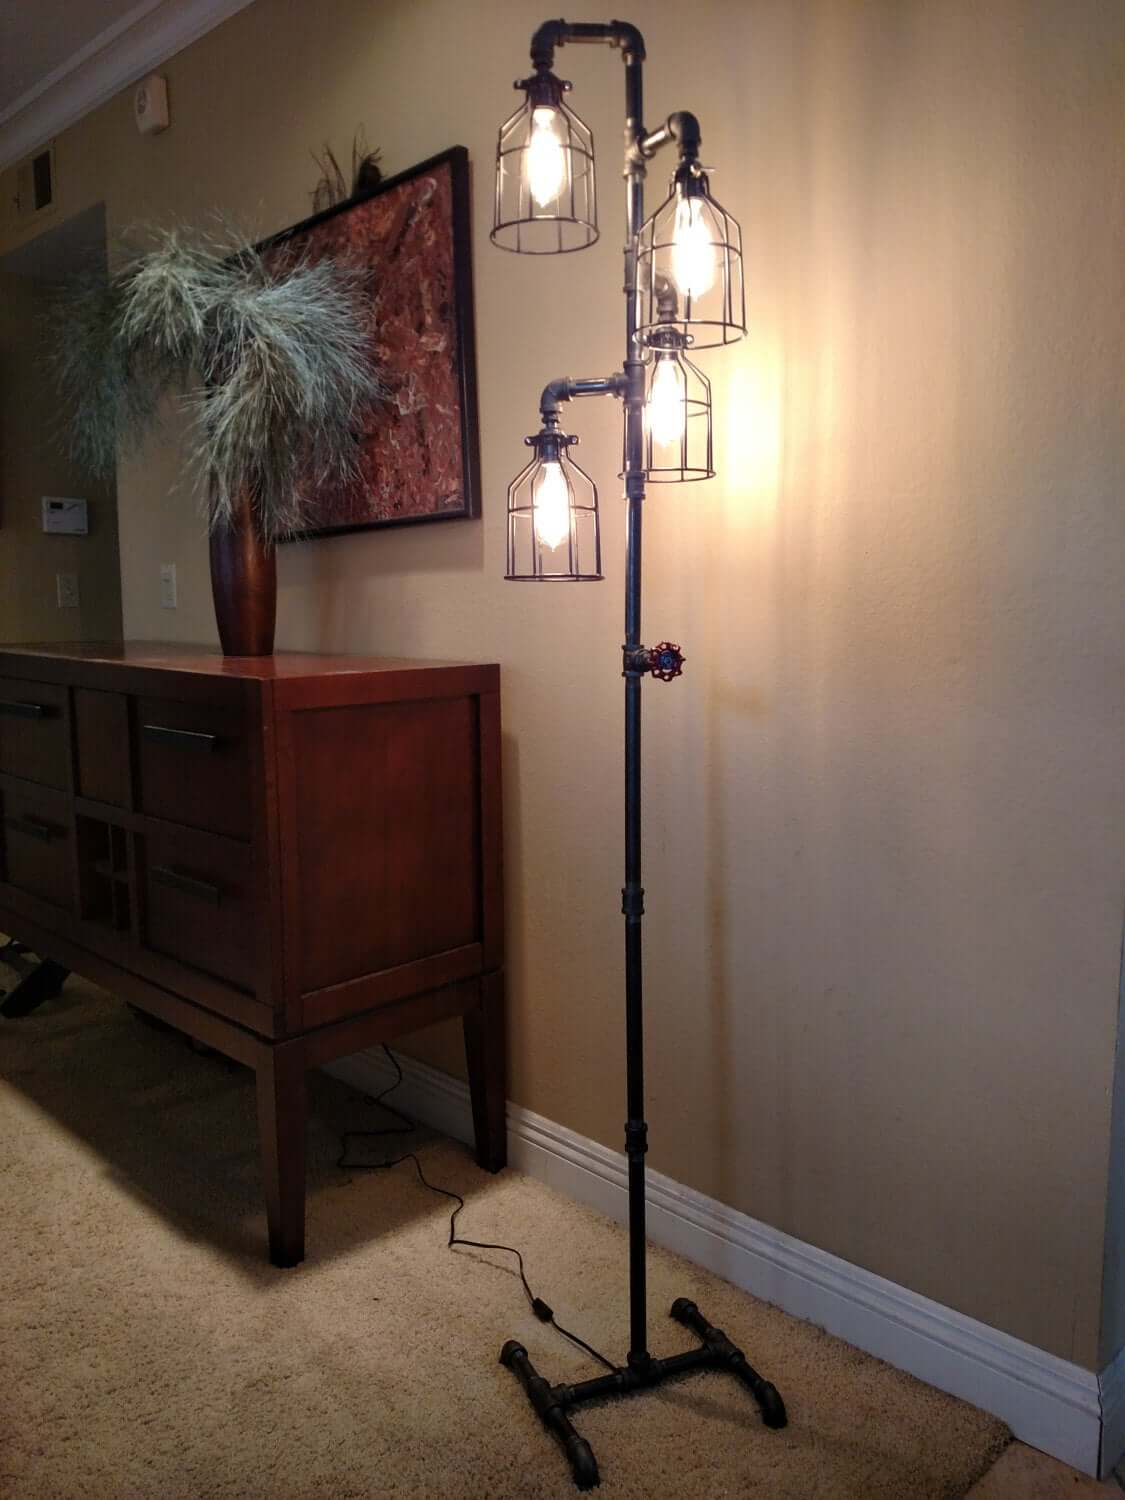 Four Armed Standing Lamp with Cage Shades